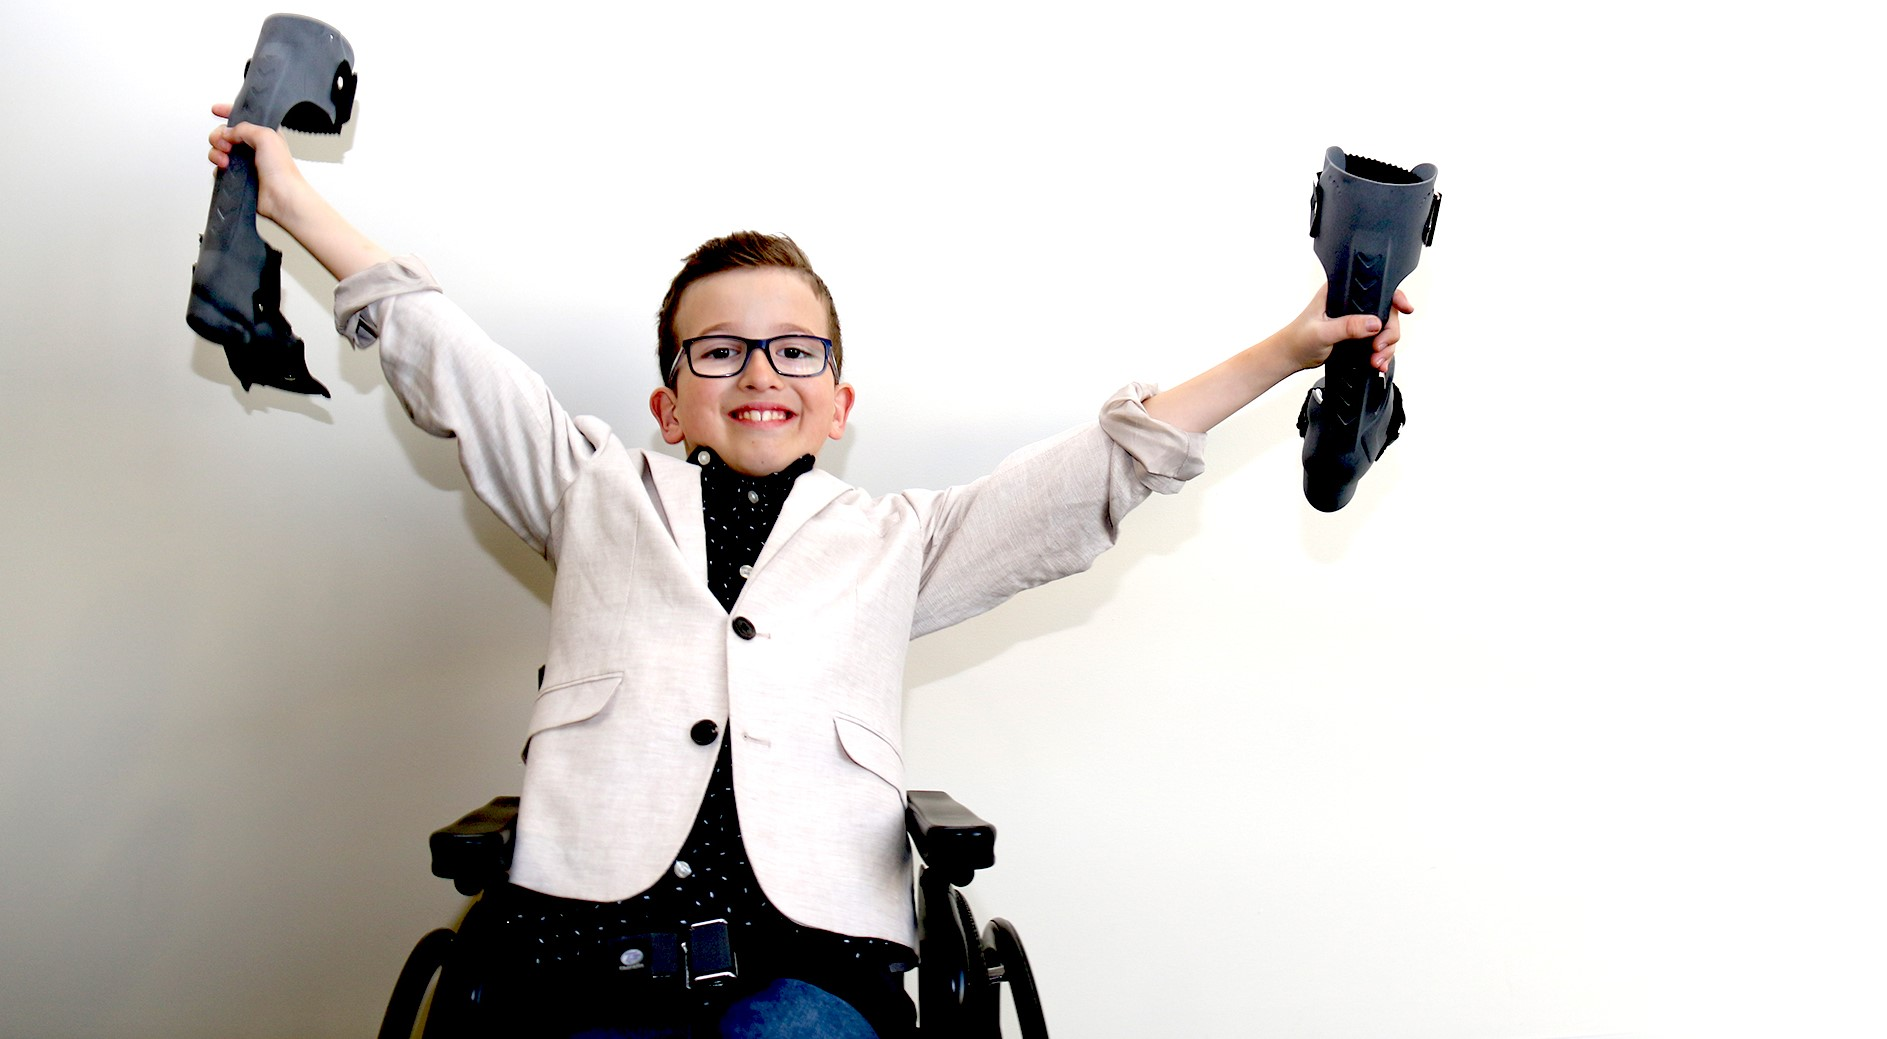 Young boy in wheelchair holding two orthotics